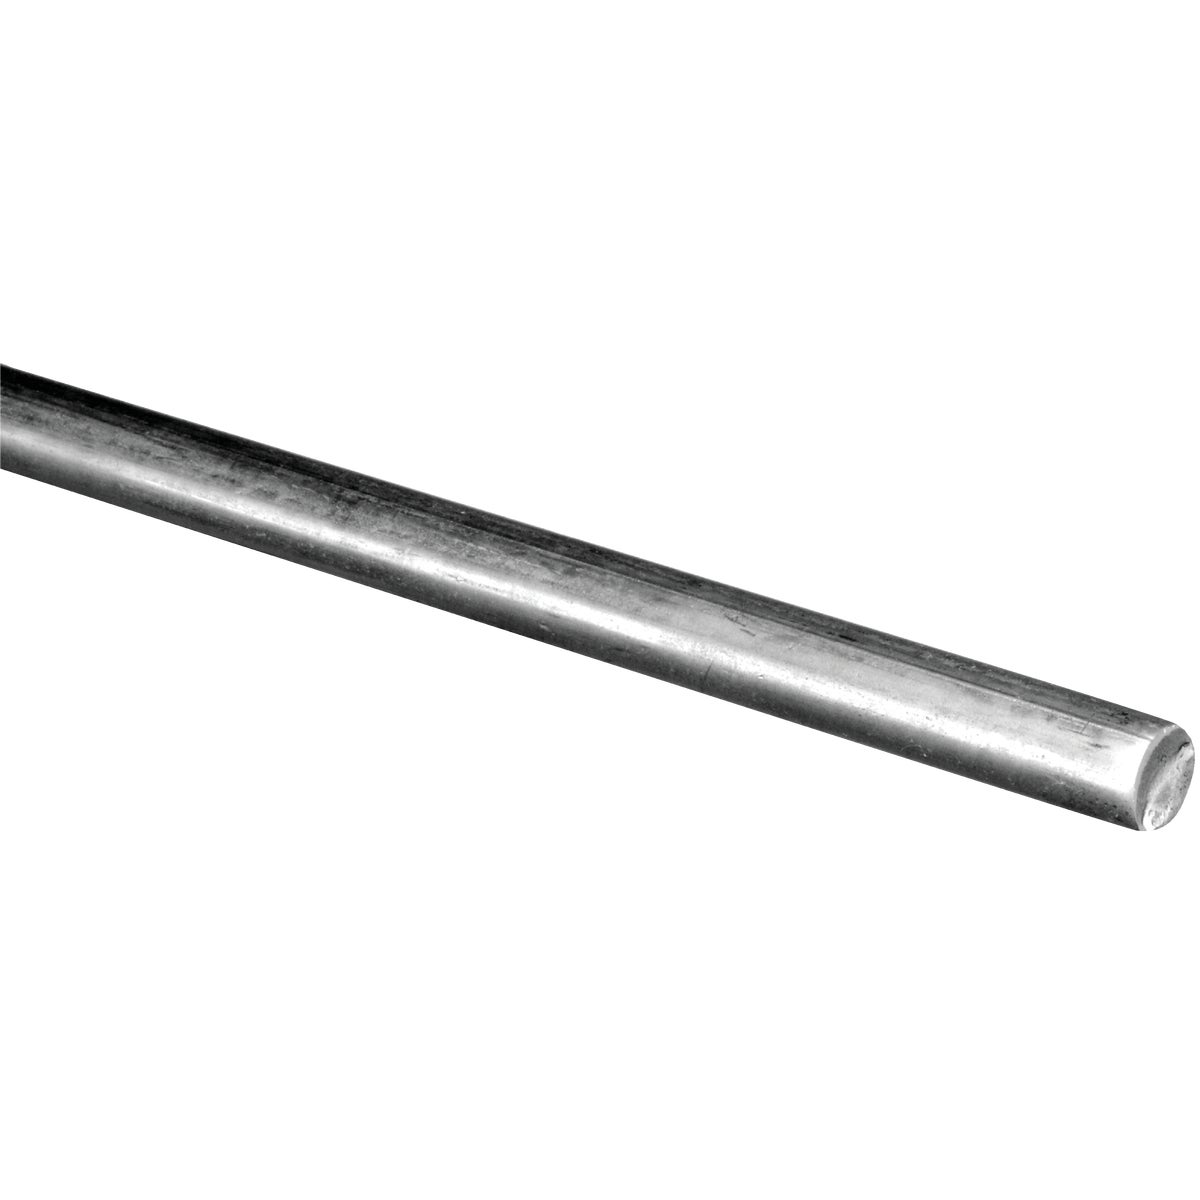 1/8X3' ROUND SS ROD - N347963 by National Mfg Co